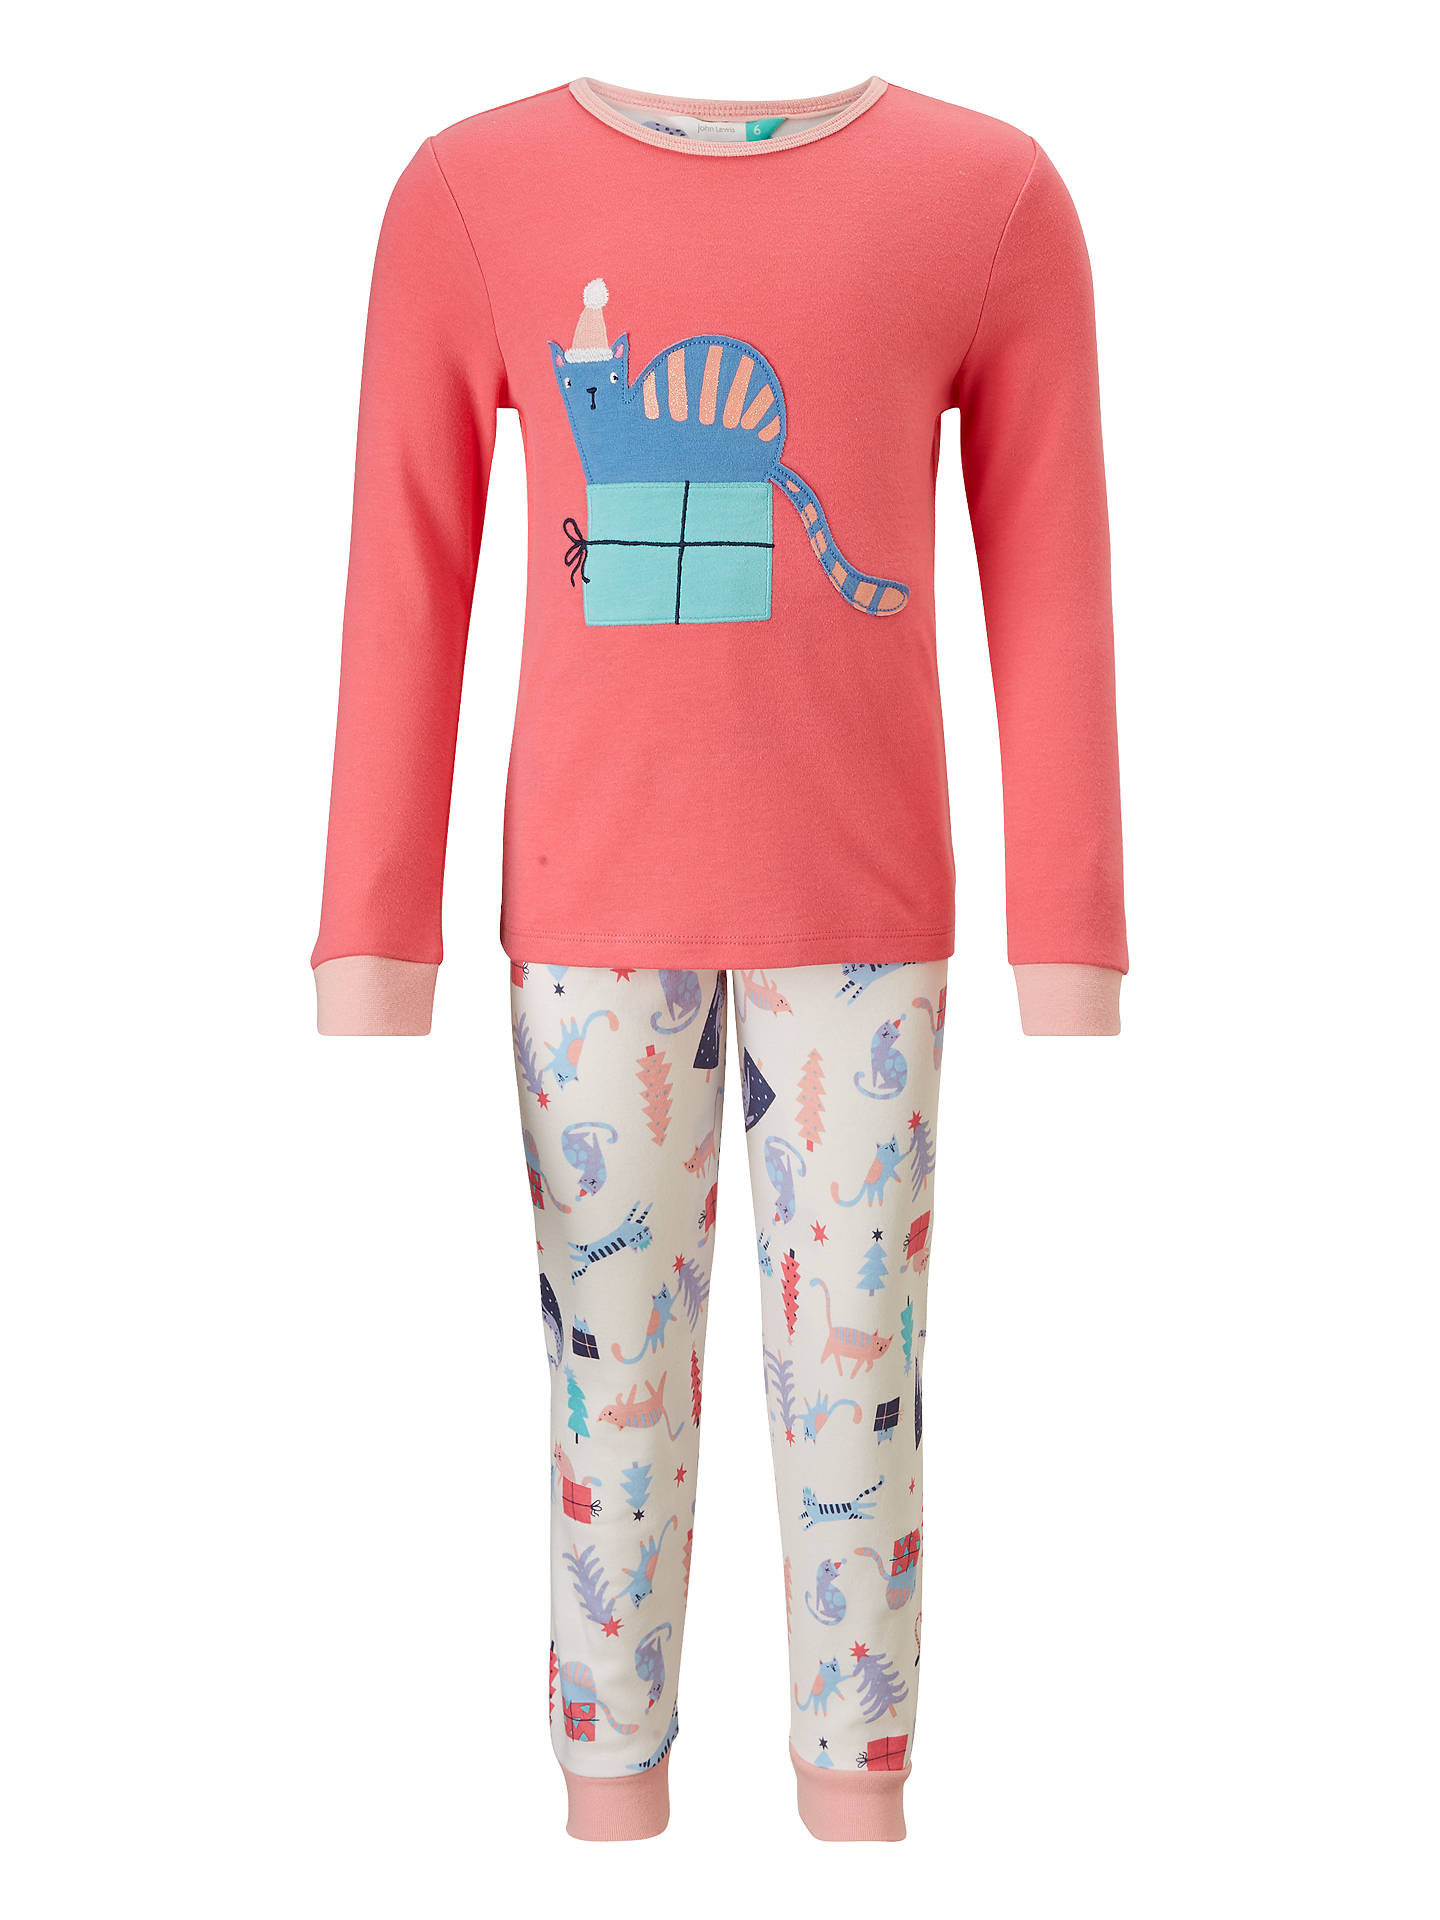 buyjohn lewis childrens christmas cat print pyjamas pink 2 years online at johnlewis - Childrens Christmas Pyjamas